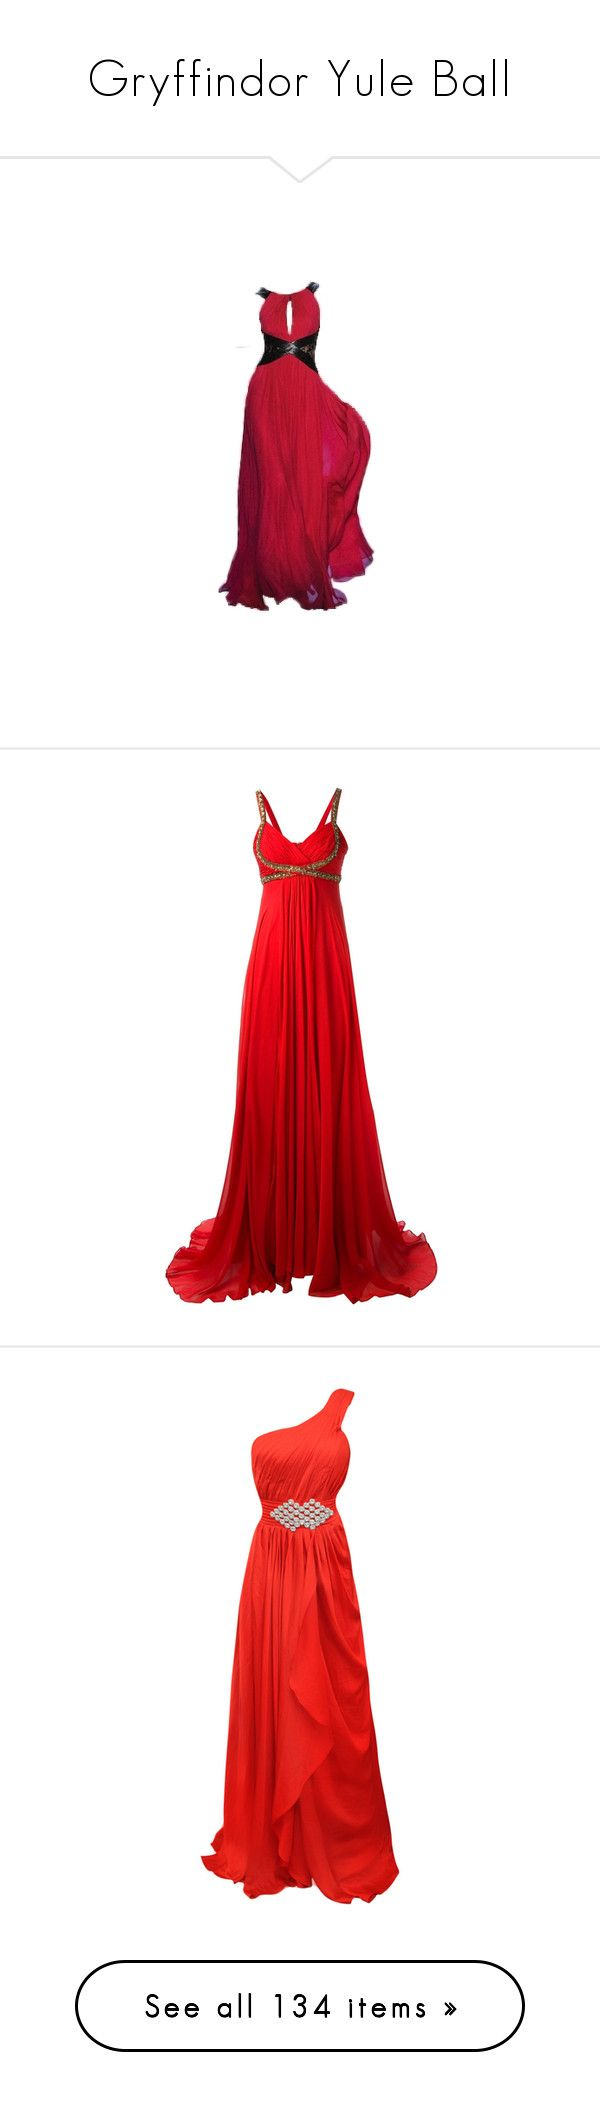 """""""Gryffindor Yule Ball"""" by somebodyyouknow on Polyvore featuring dresses, gowns, long dresses, robes, long red evening dress, monique lhuillier dresses, monique lhuillier gown, red evening gowns, red gown and vestidos"""